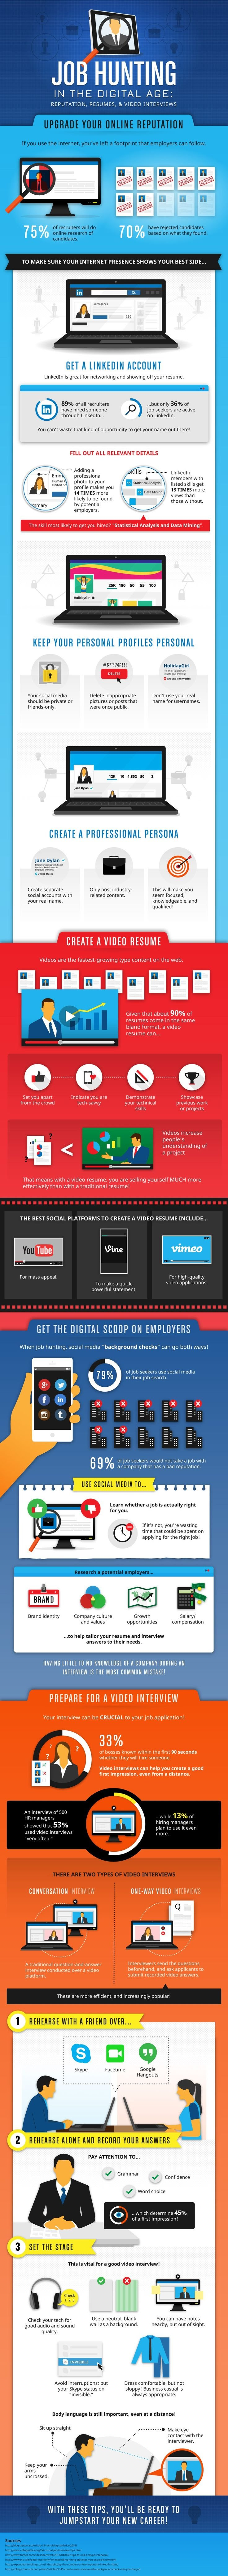 Job Hunting in the Digital Age - #infographic